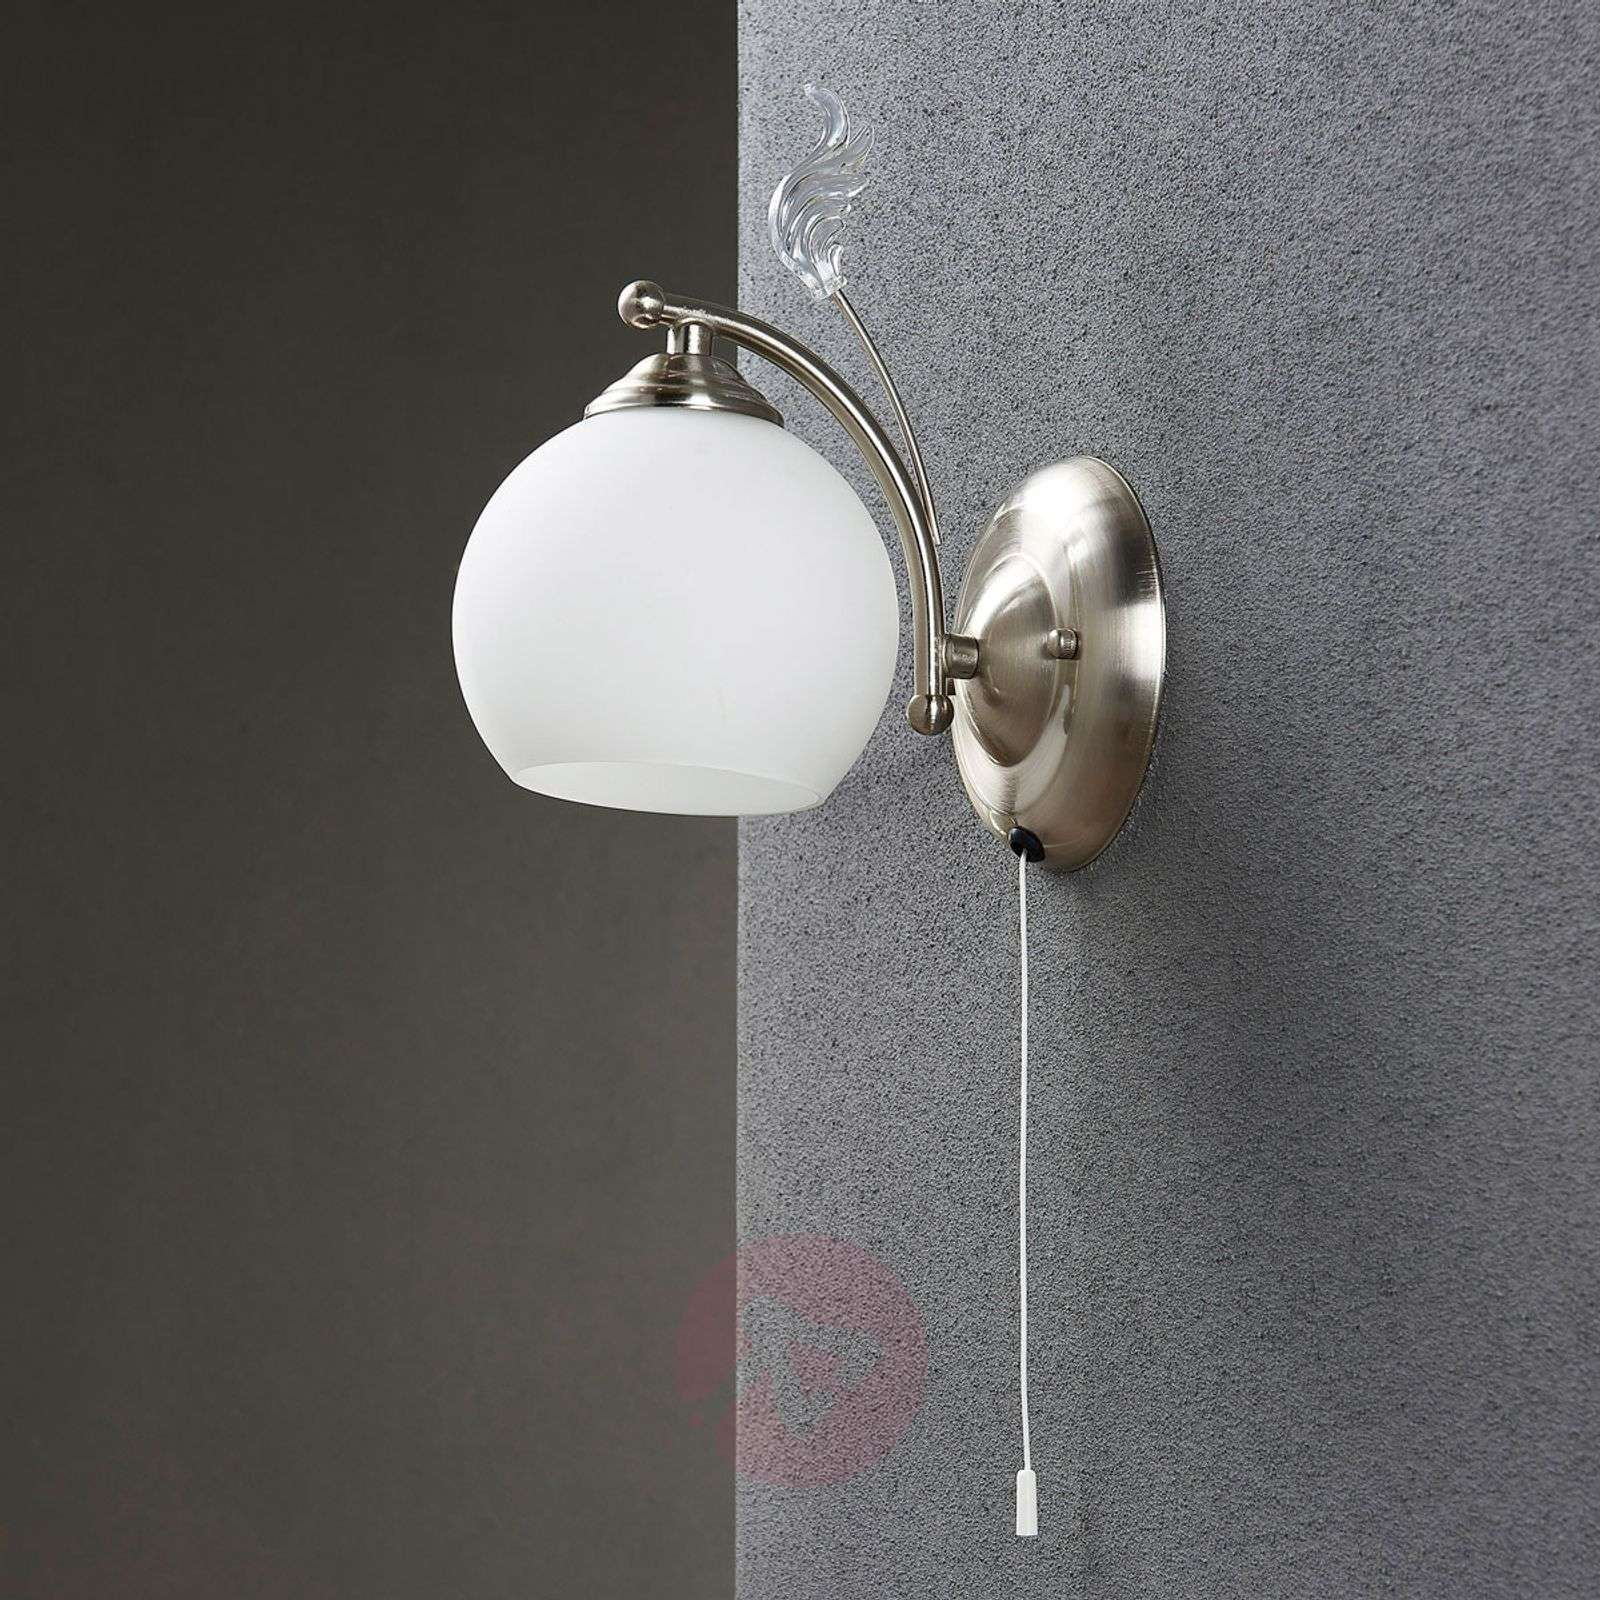 Decorative wall light Svean-9620763-02